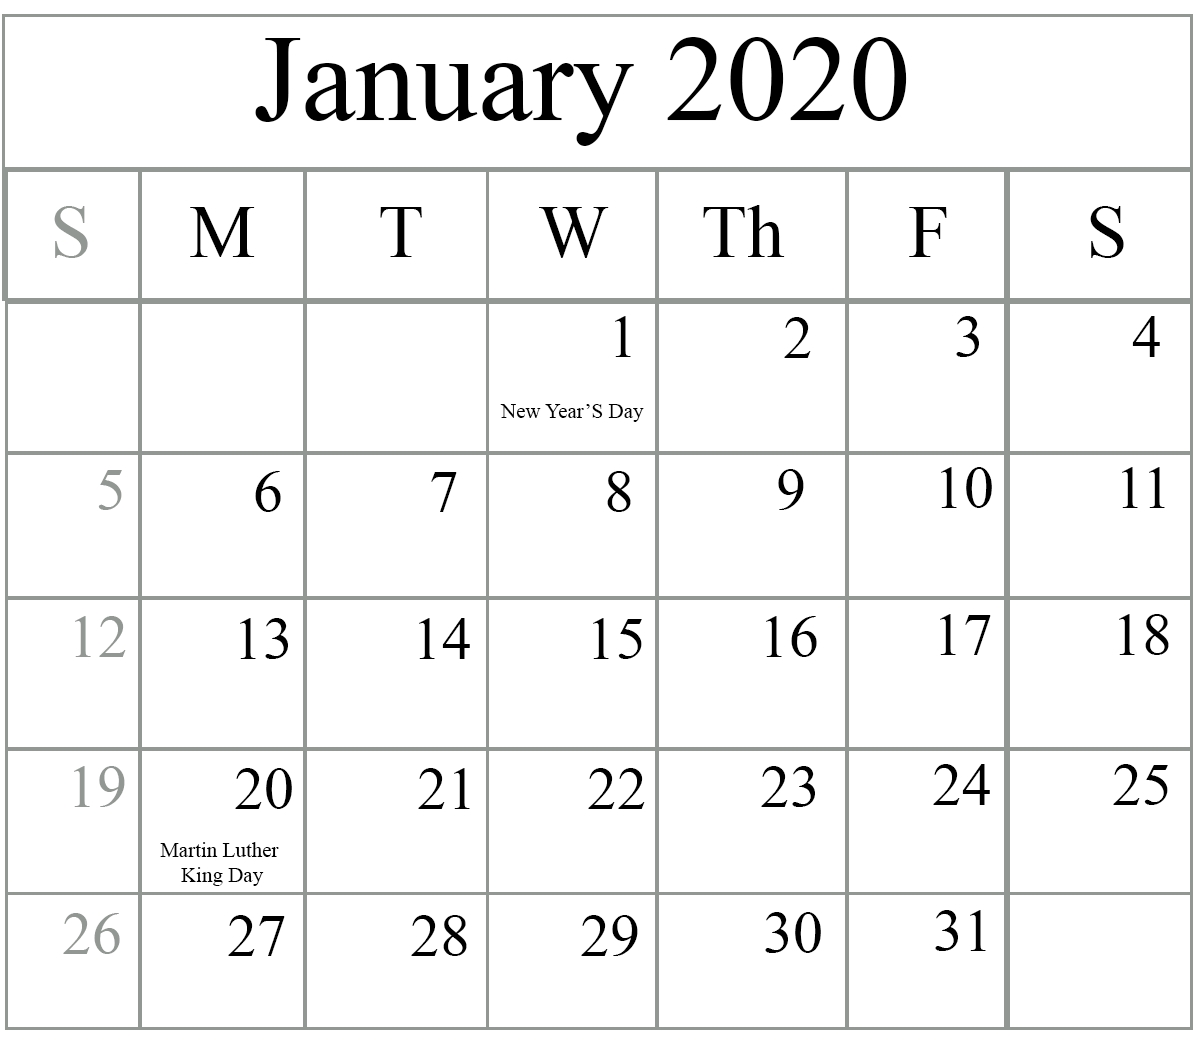 Free January 2020 Printable Calendar In Pdf, Excel & Word-January 2020 Calendar Doc